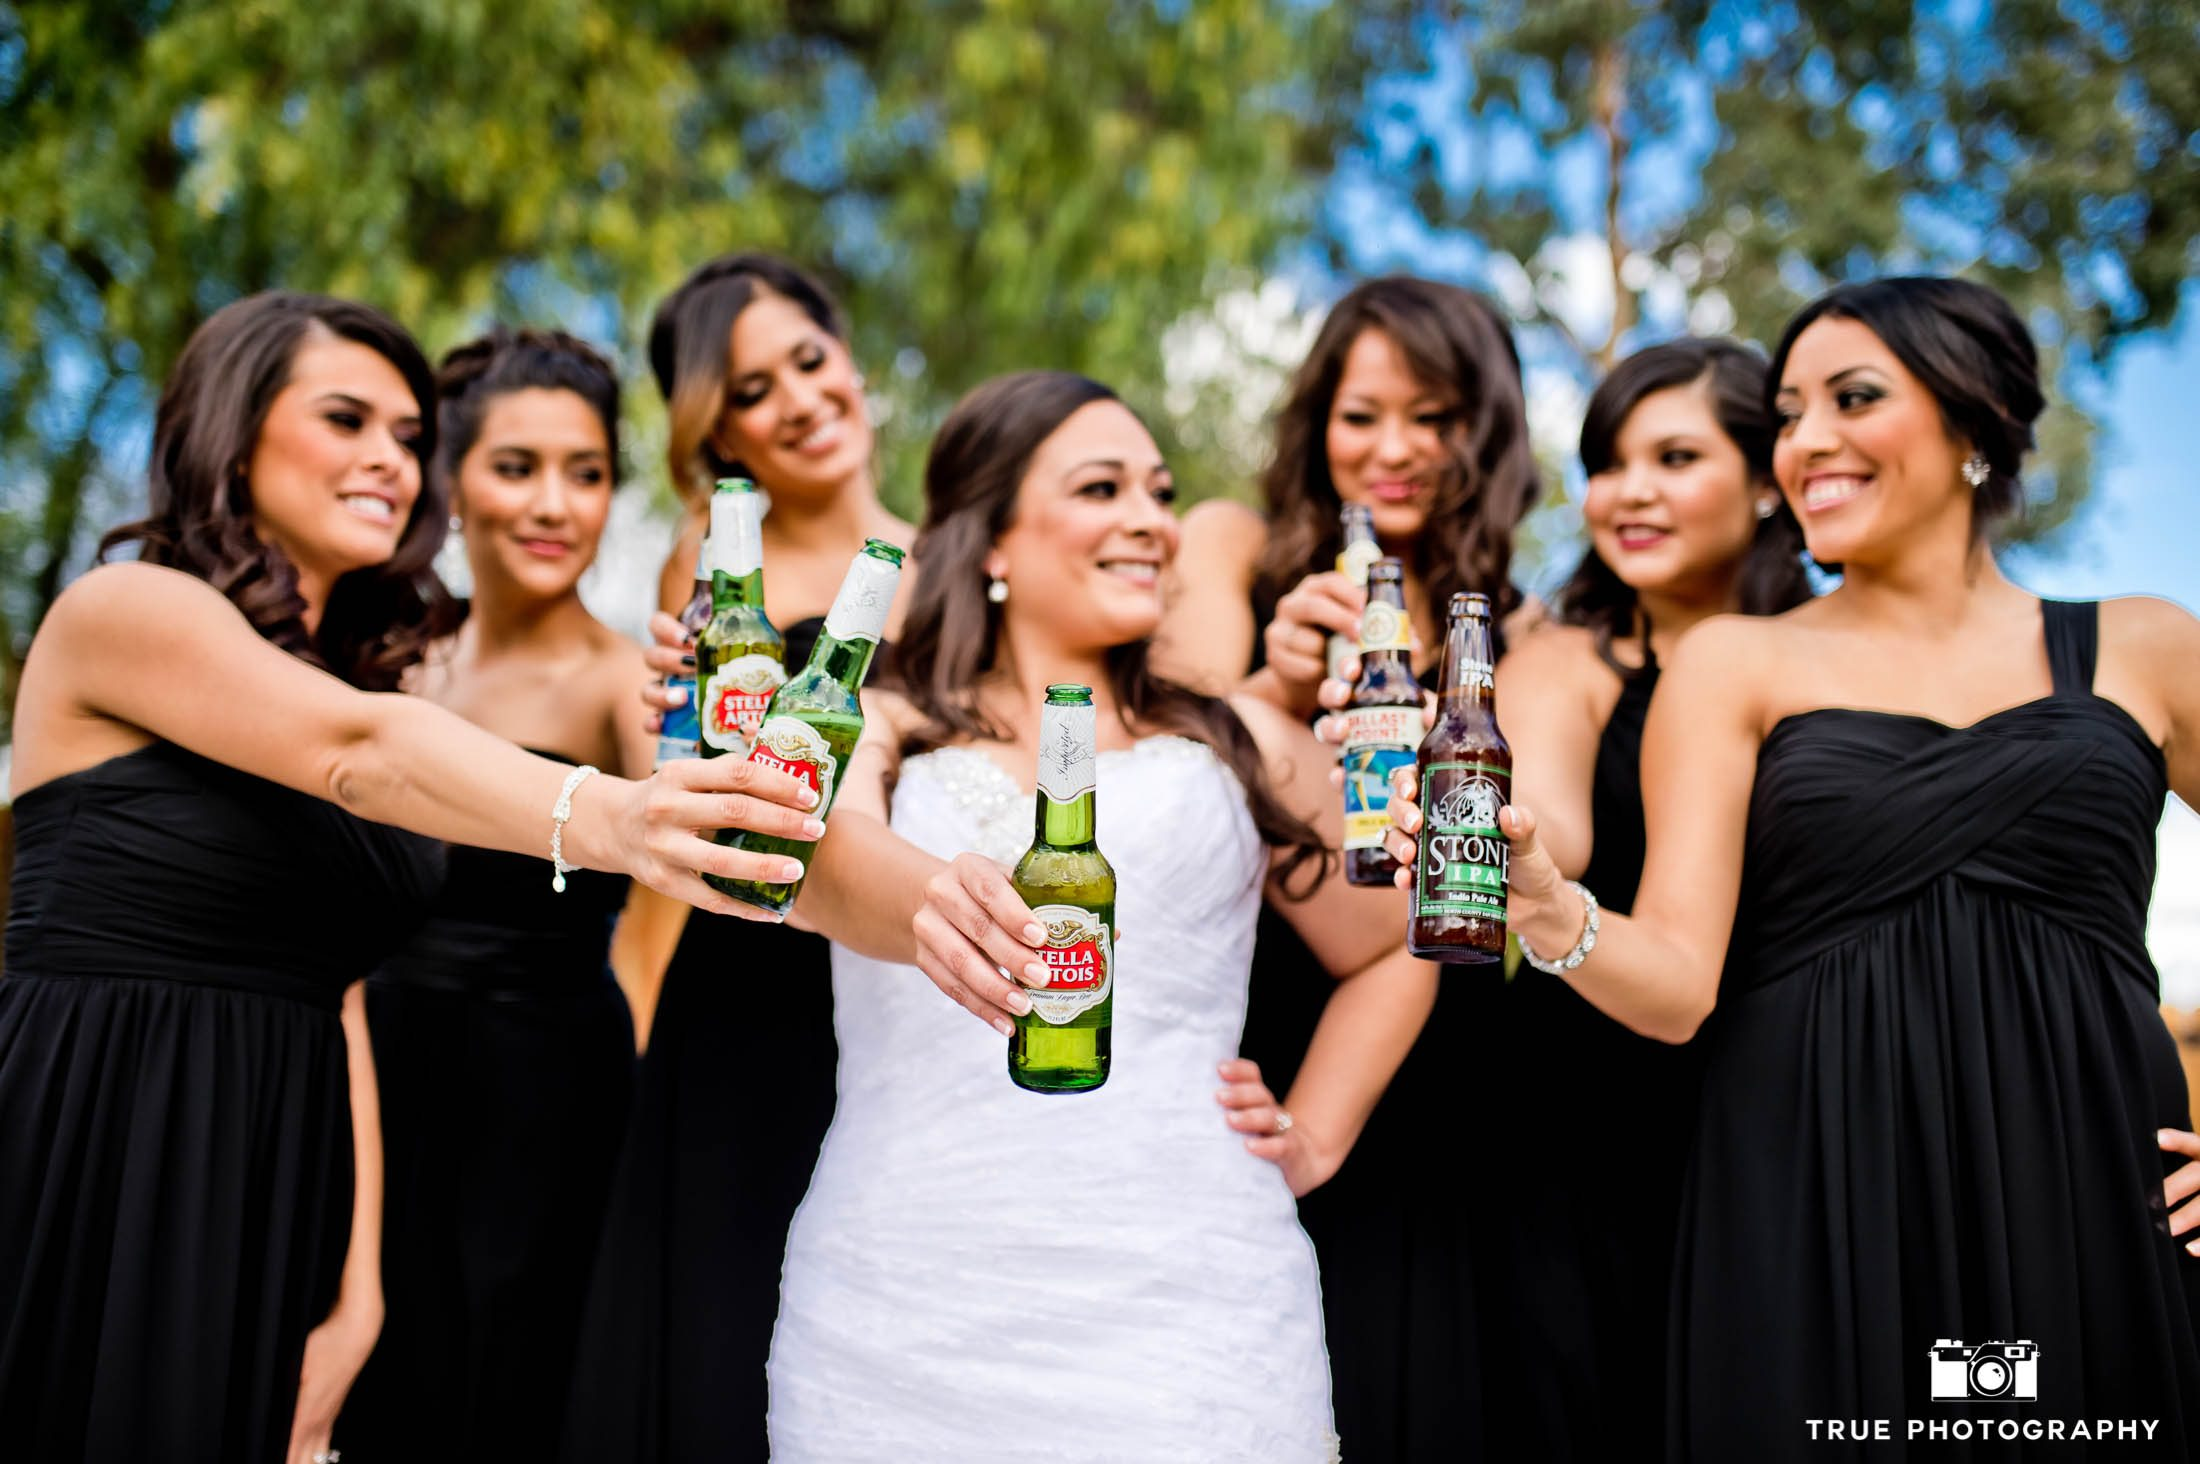 Bride and bridesmaids toast with craft beers